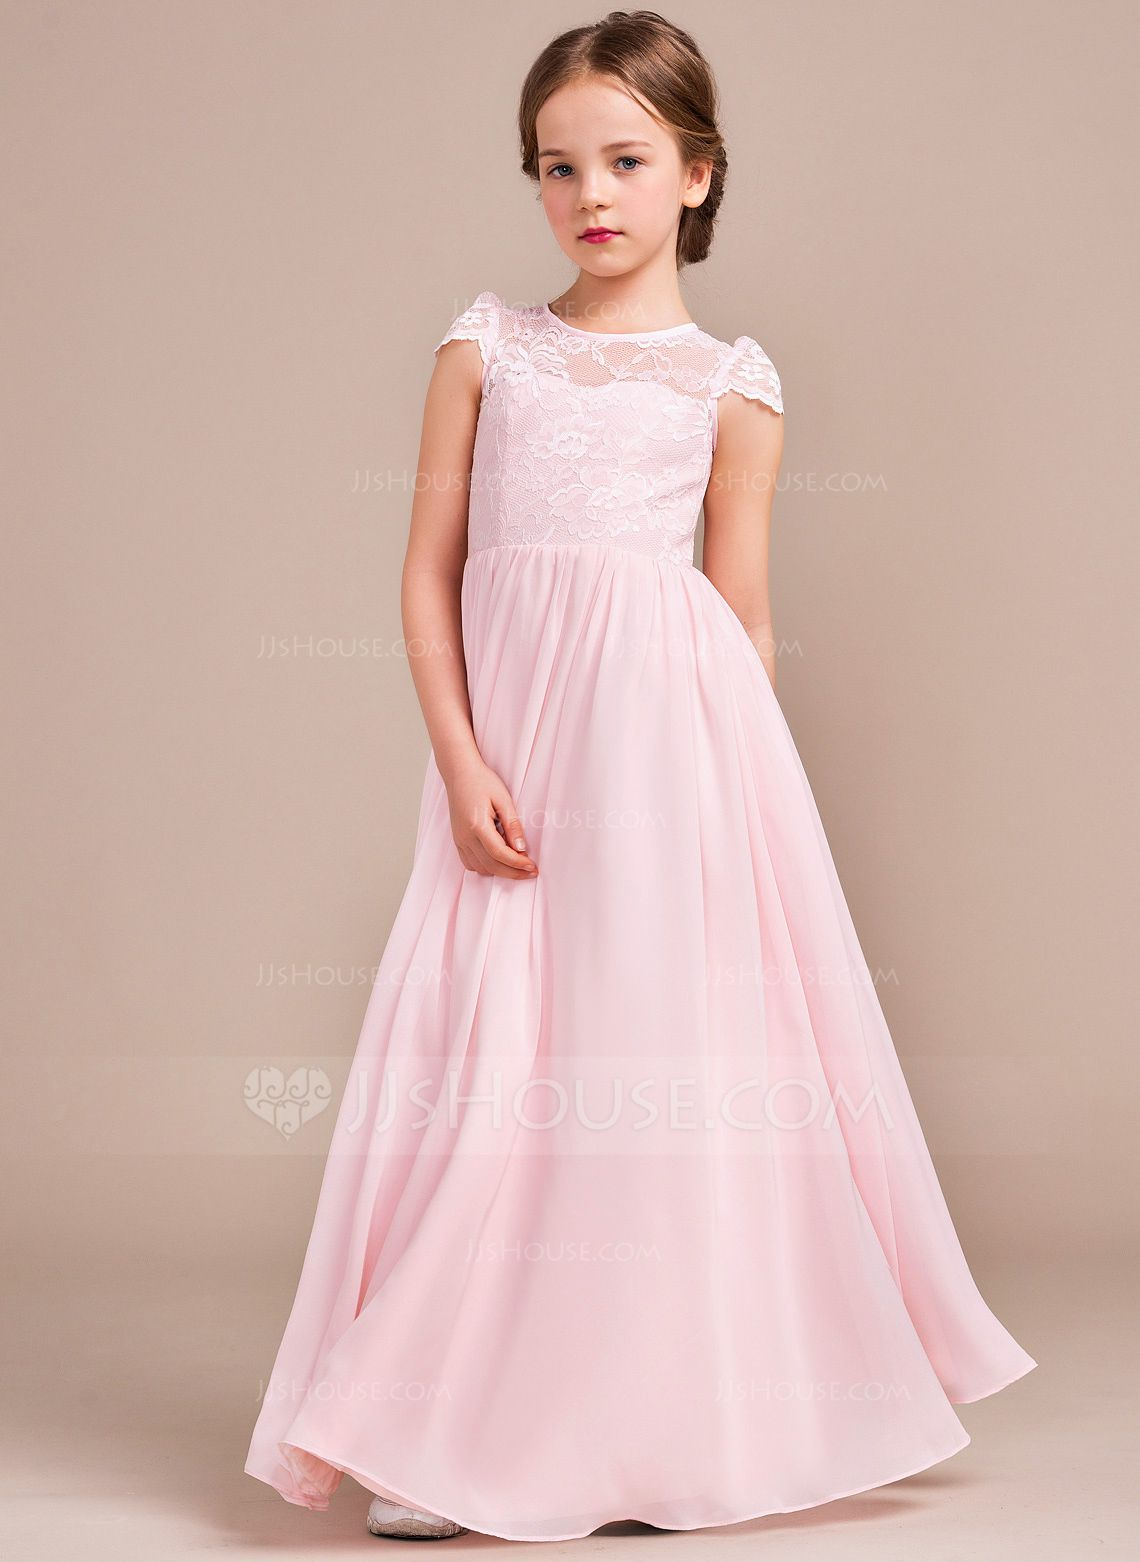 Dress for wedding party for girl  ALinePrincess Scoop Neck FloorLength Chiffon Lace Junior